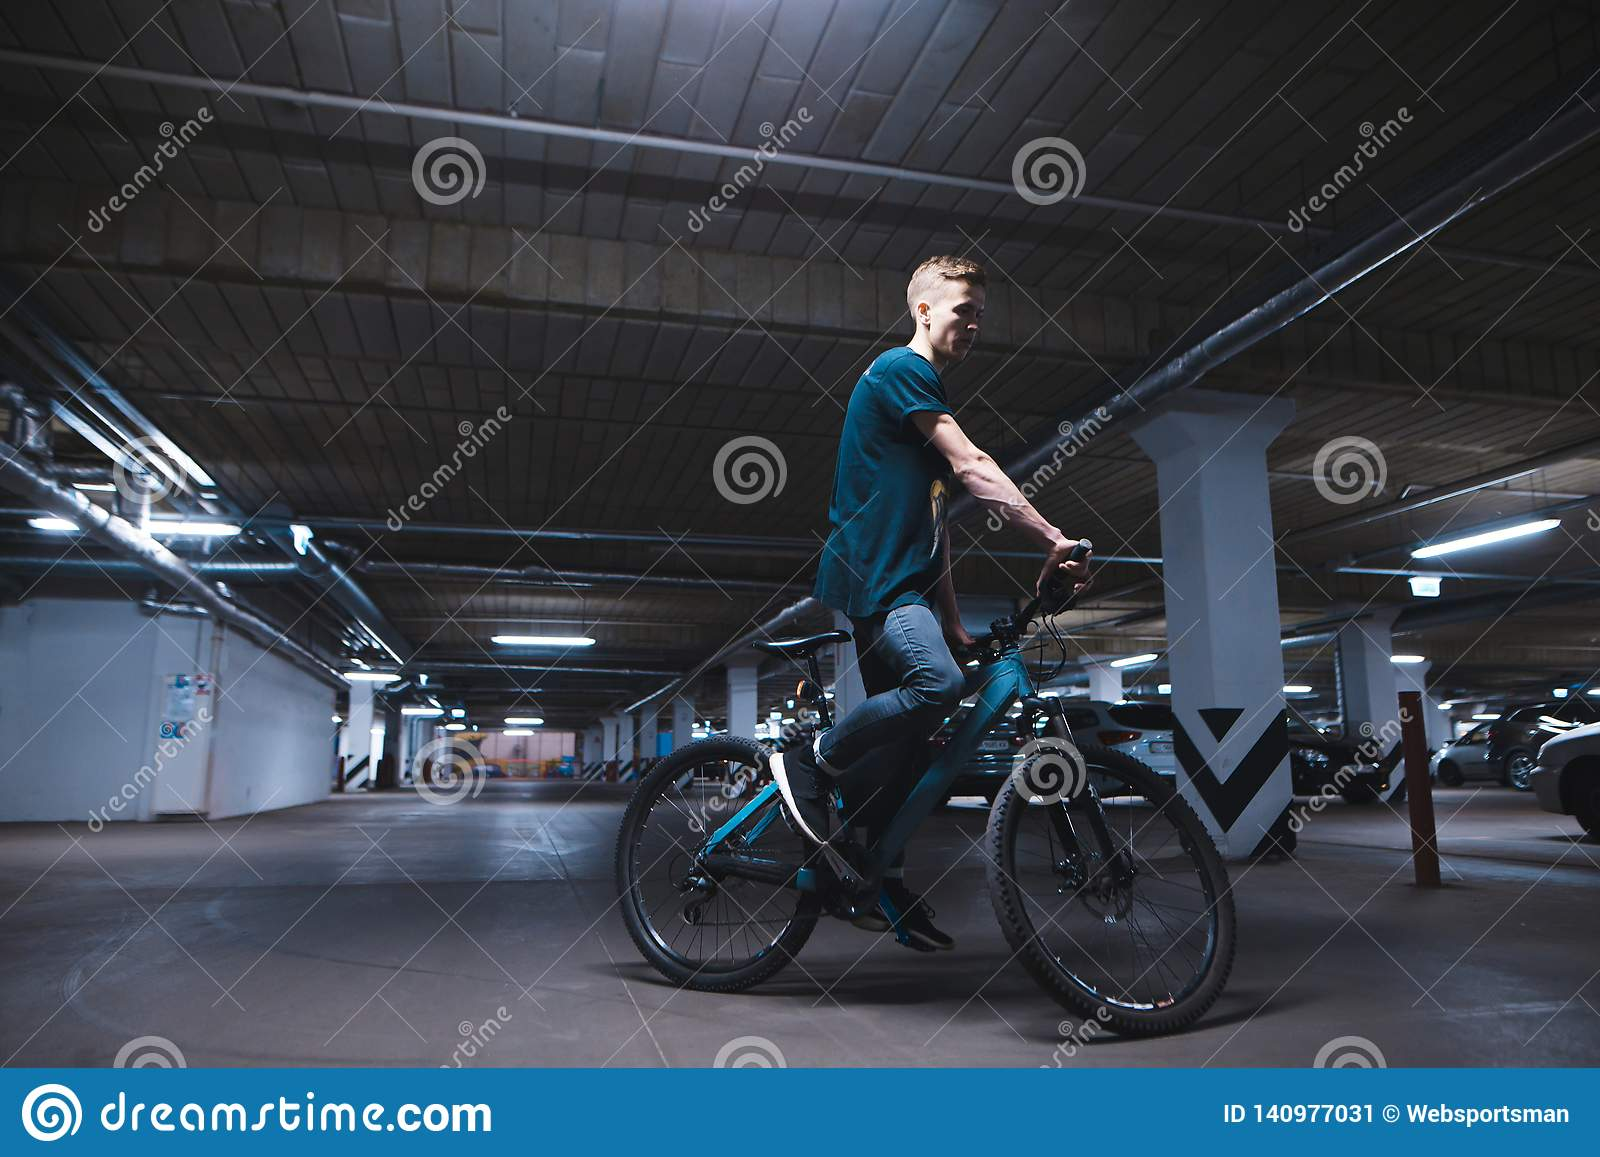 cyclist in an underground parking lot for cars. A man rides a bicycle by parking